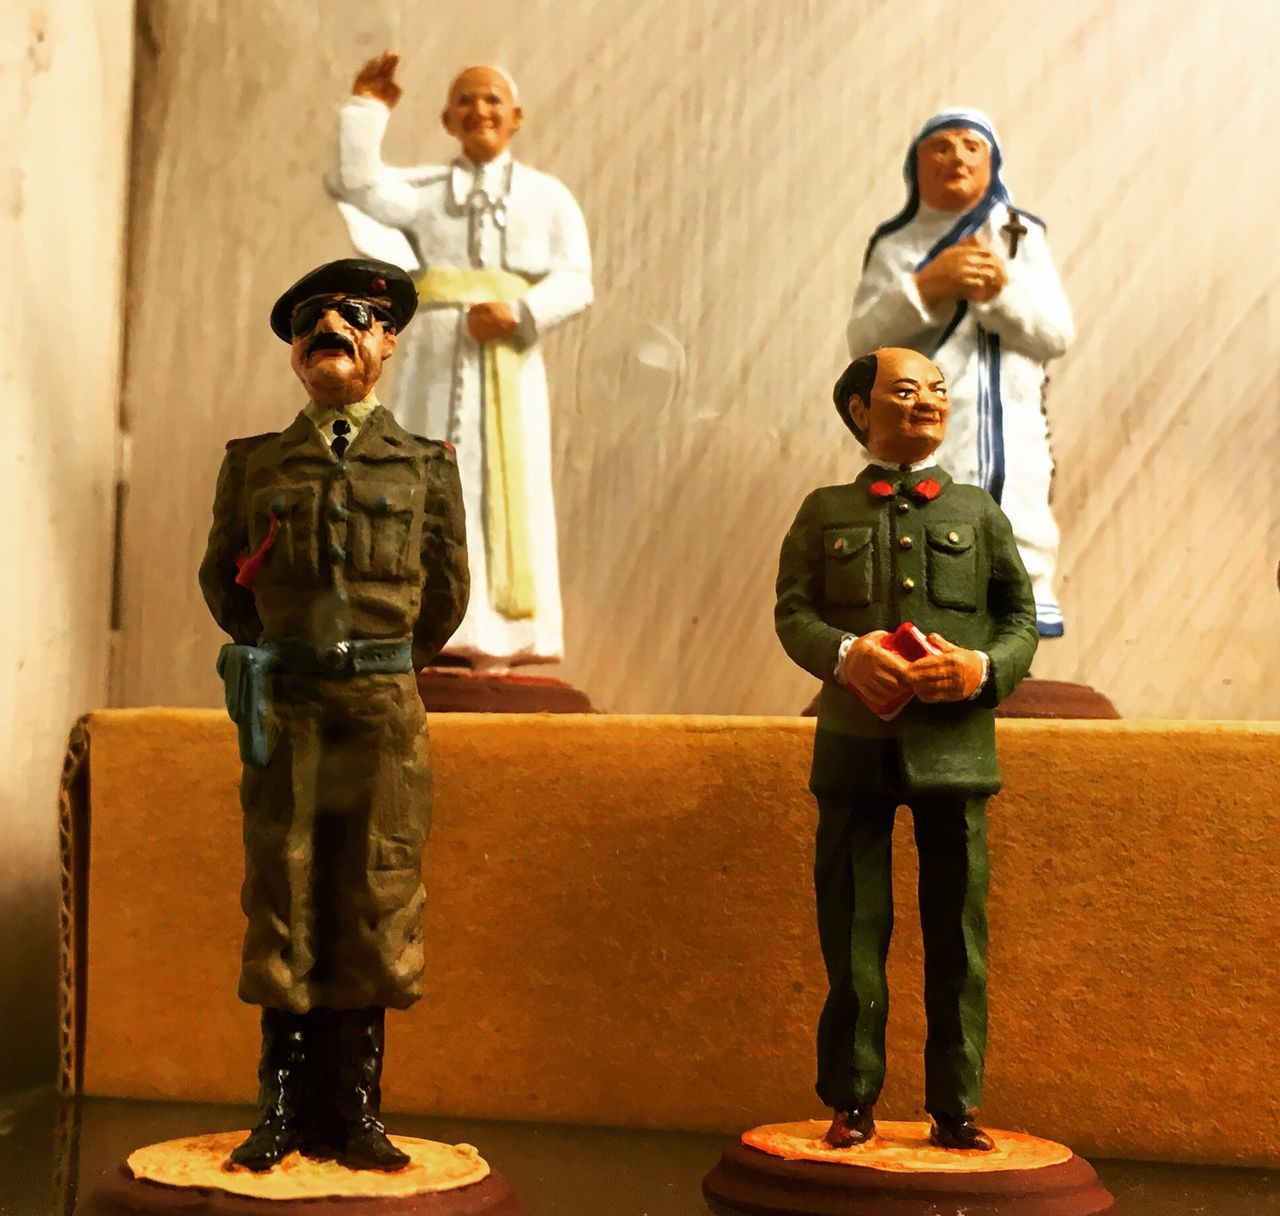 Saddam Hussein Chairman Mao The Pope Mother Teresa Models Display Italy Rome Small